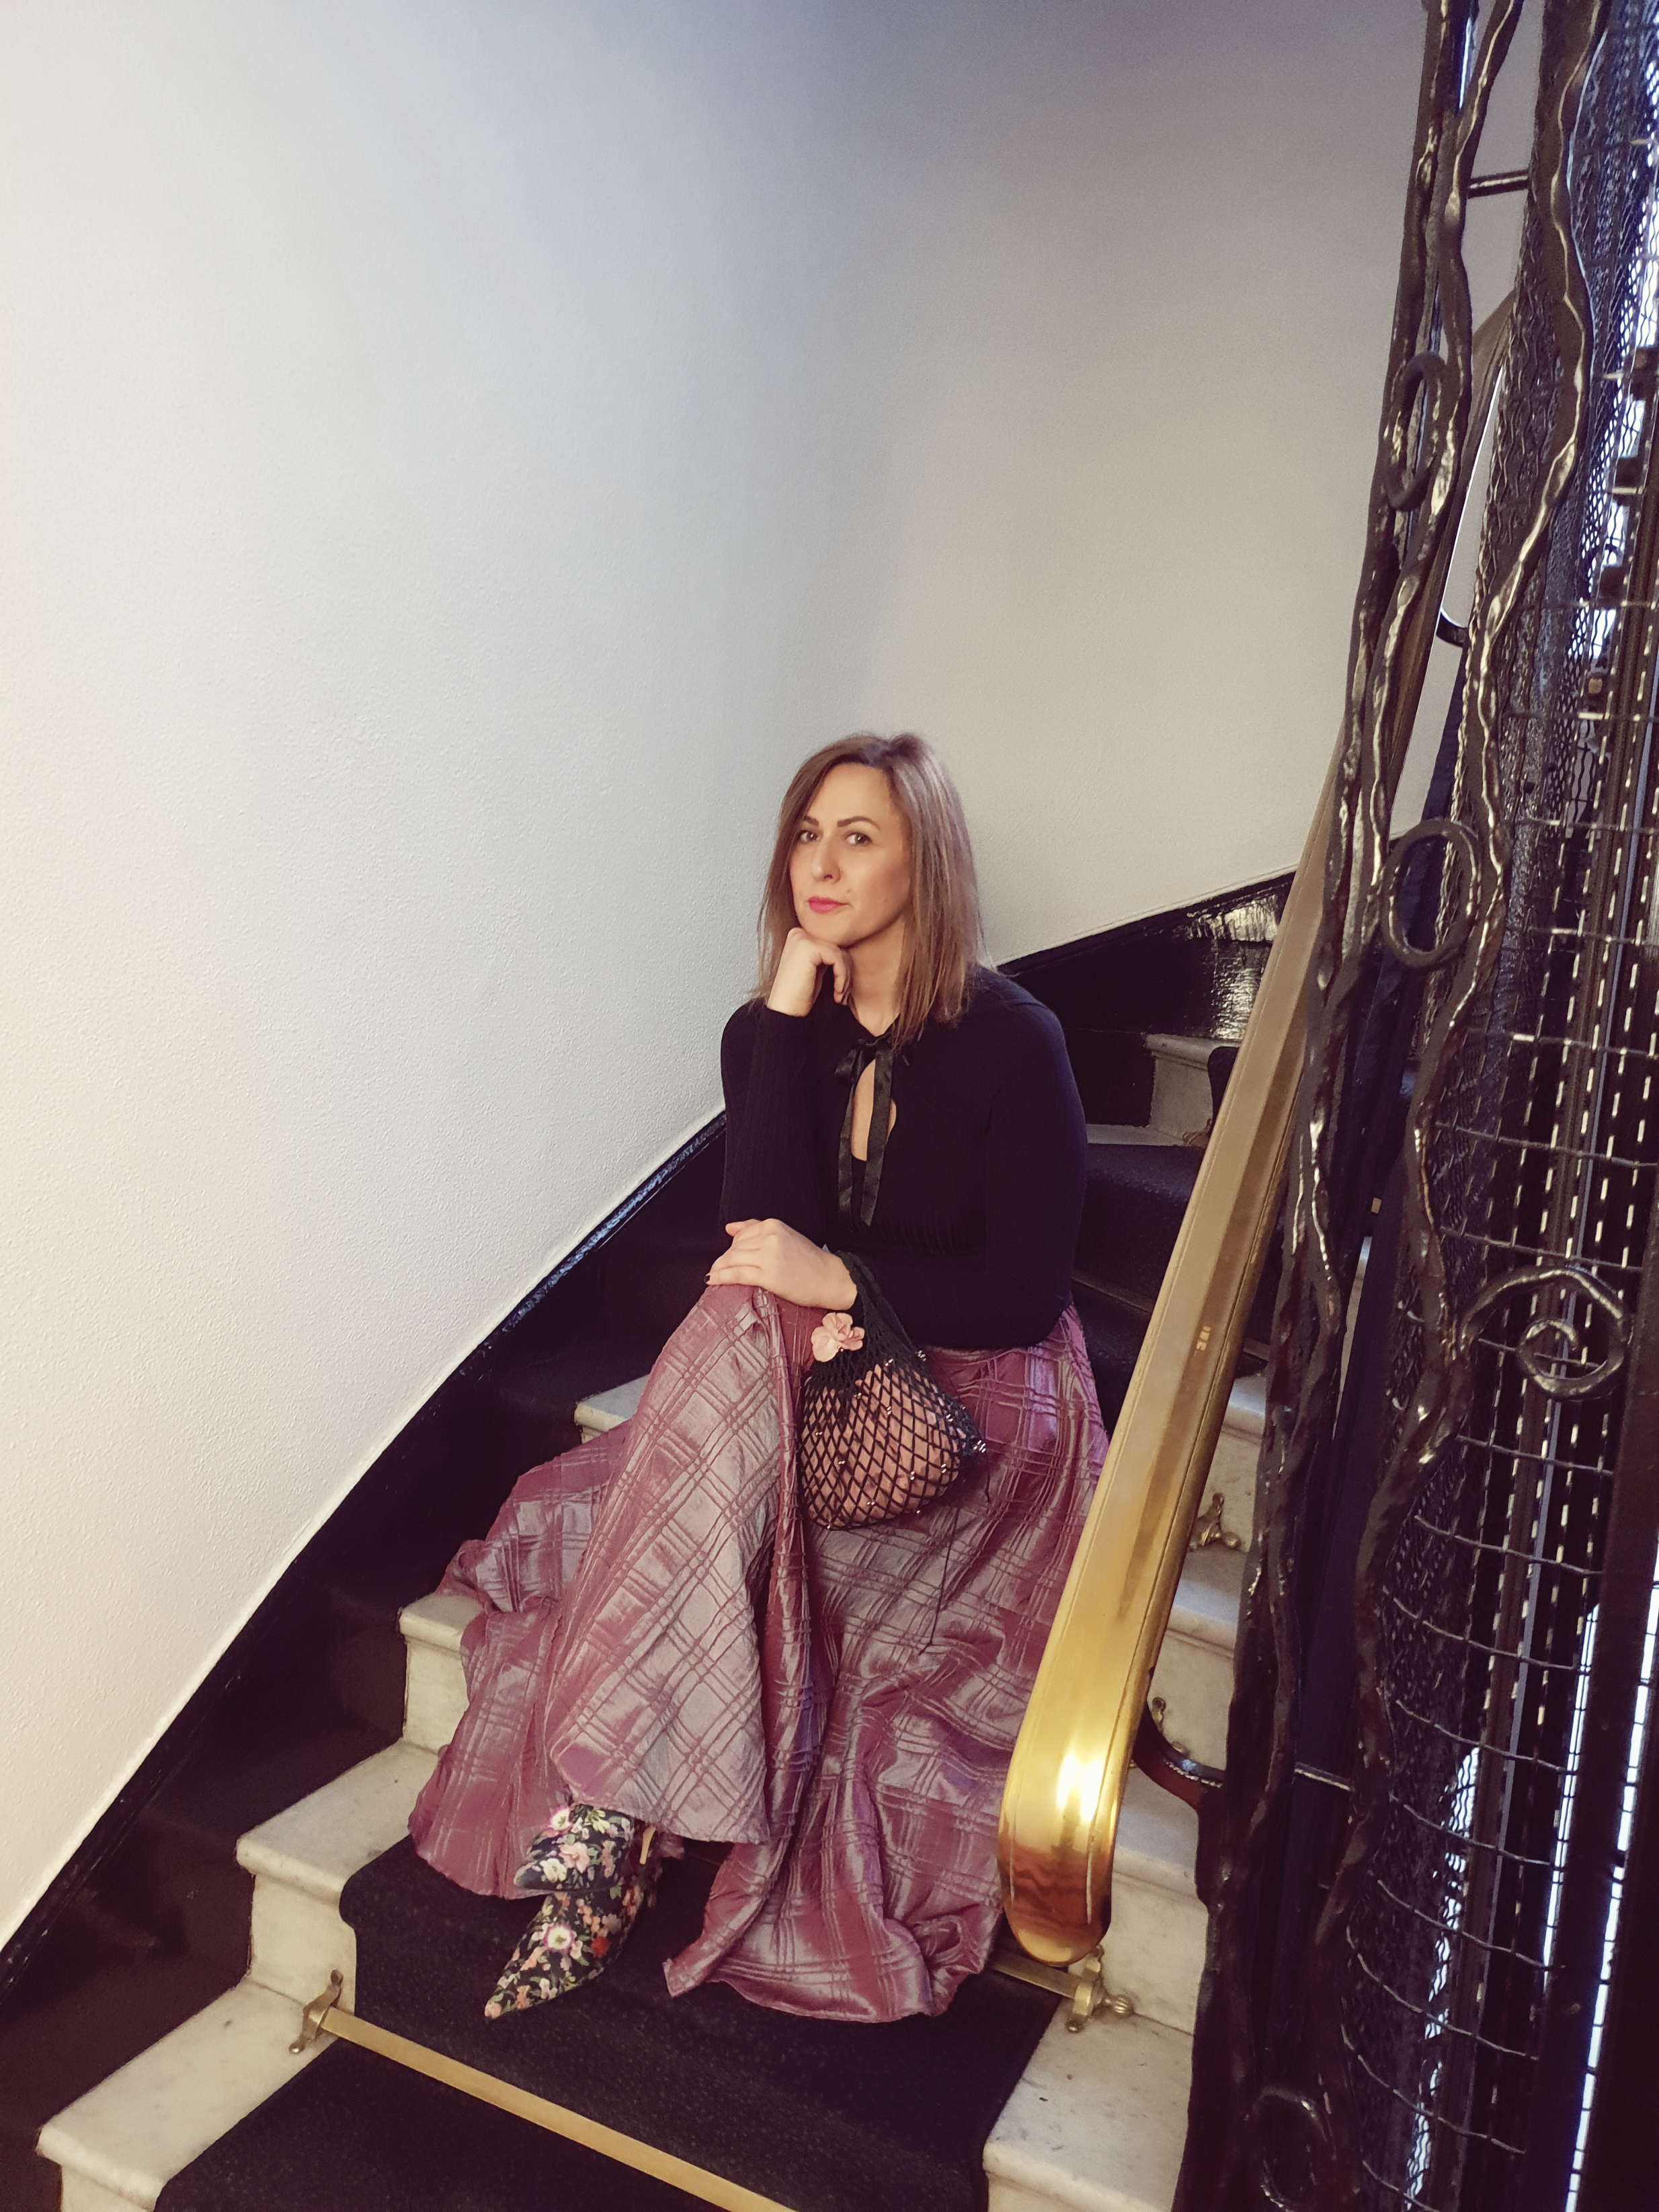 Maion taft skirt and net bag for Moulin Rouge experience